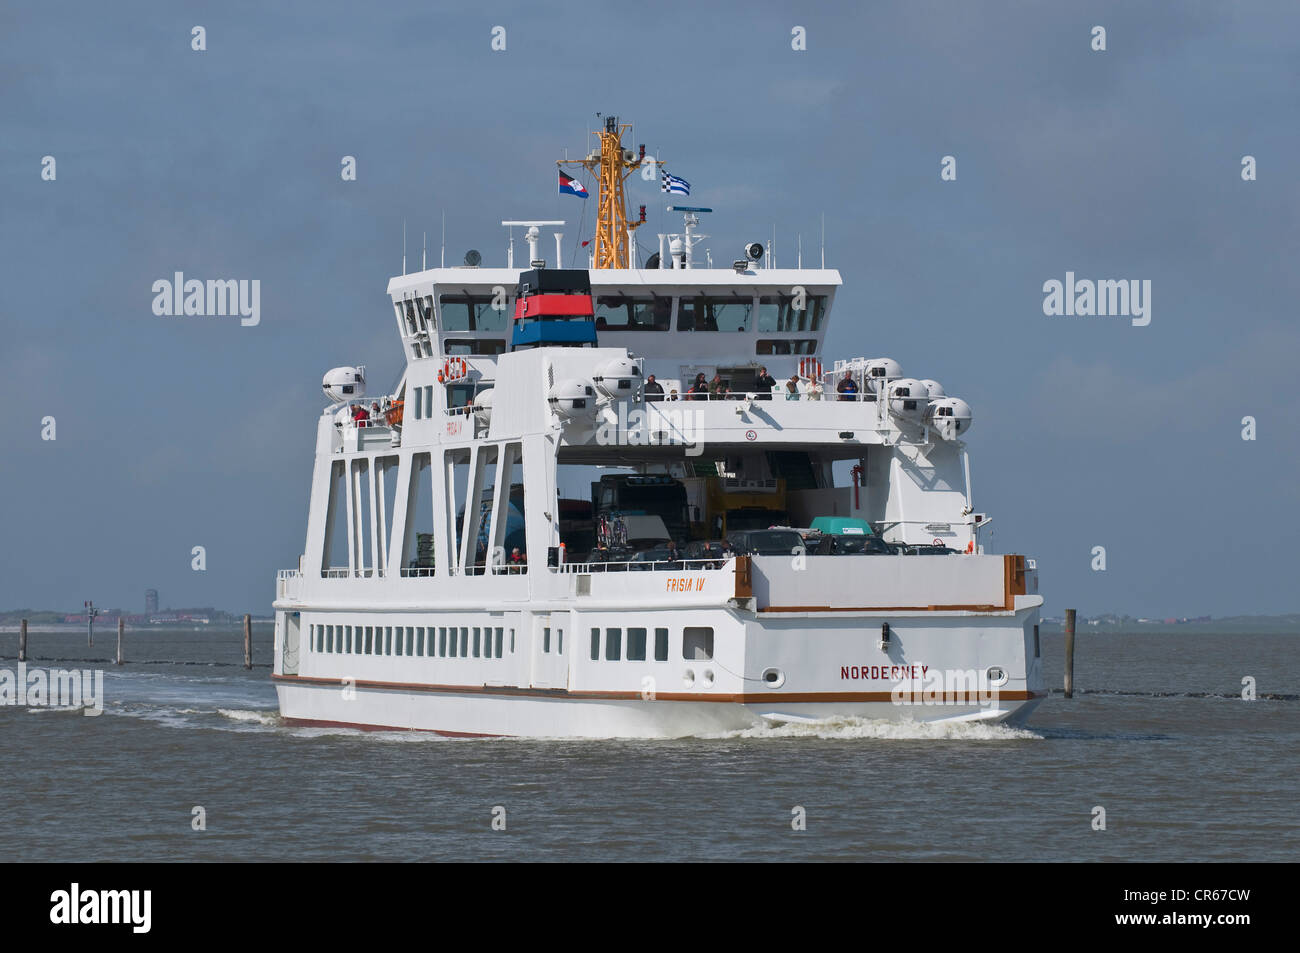 Ferry 'Frisia 4', double-ended ferry on the Norderney - Norddeich route, Wadden Sea UNESCO World Heritage - Stock Image